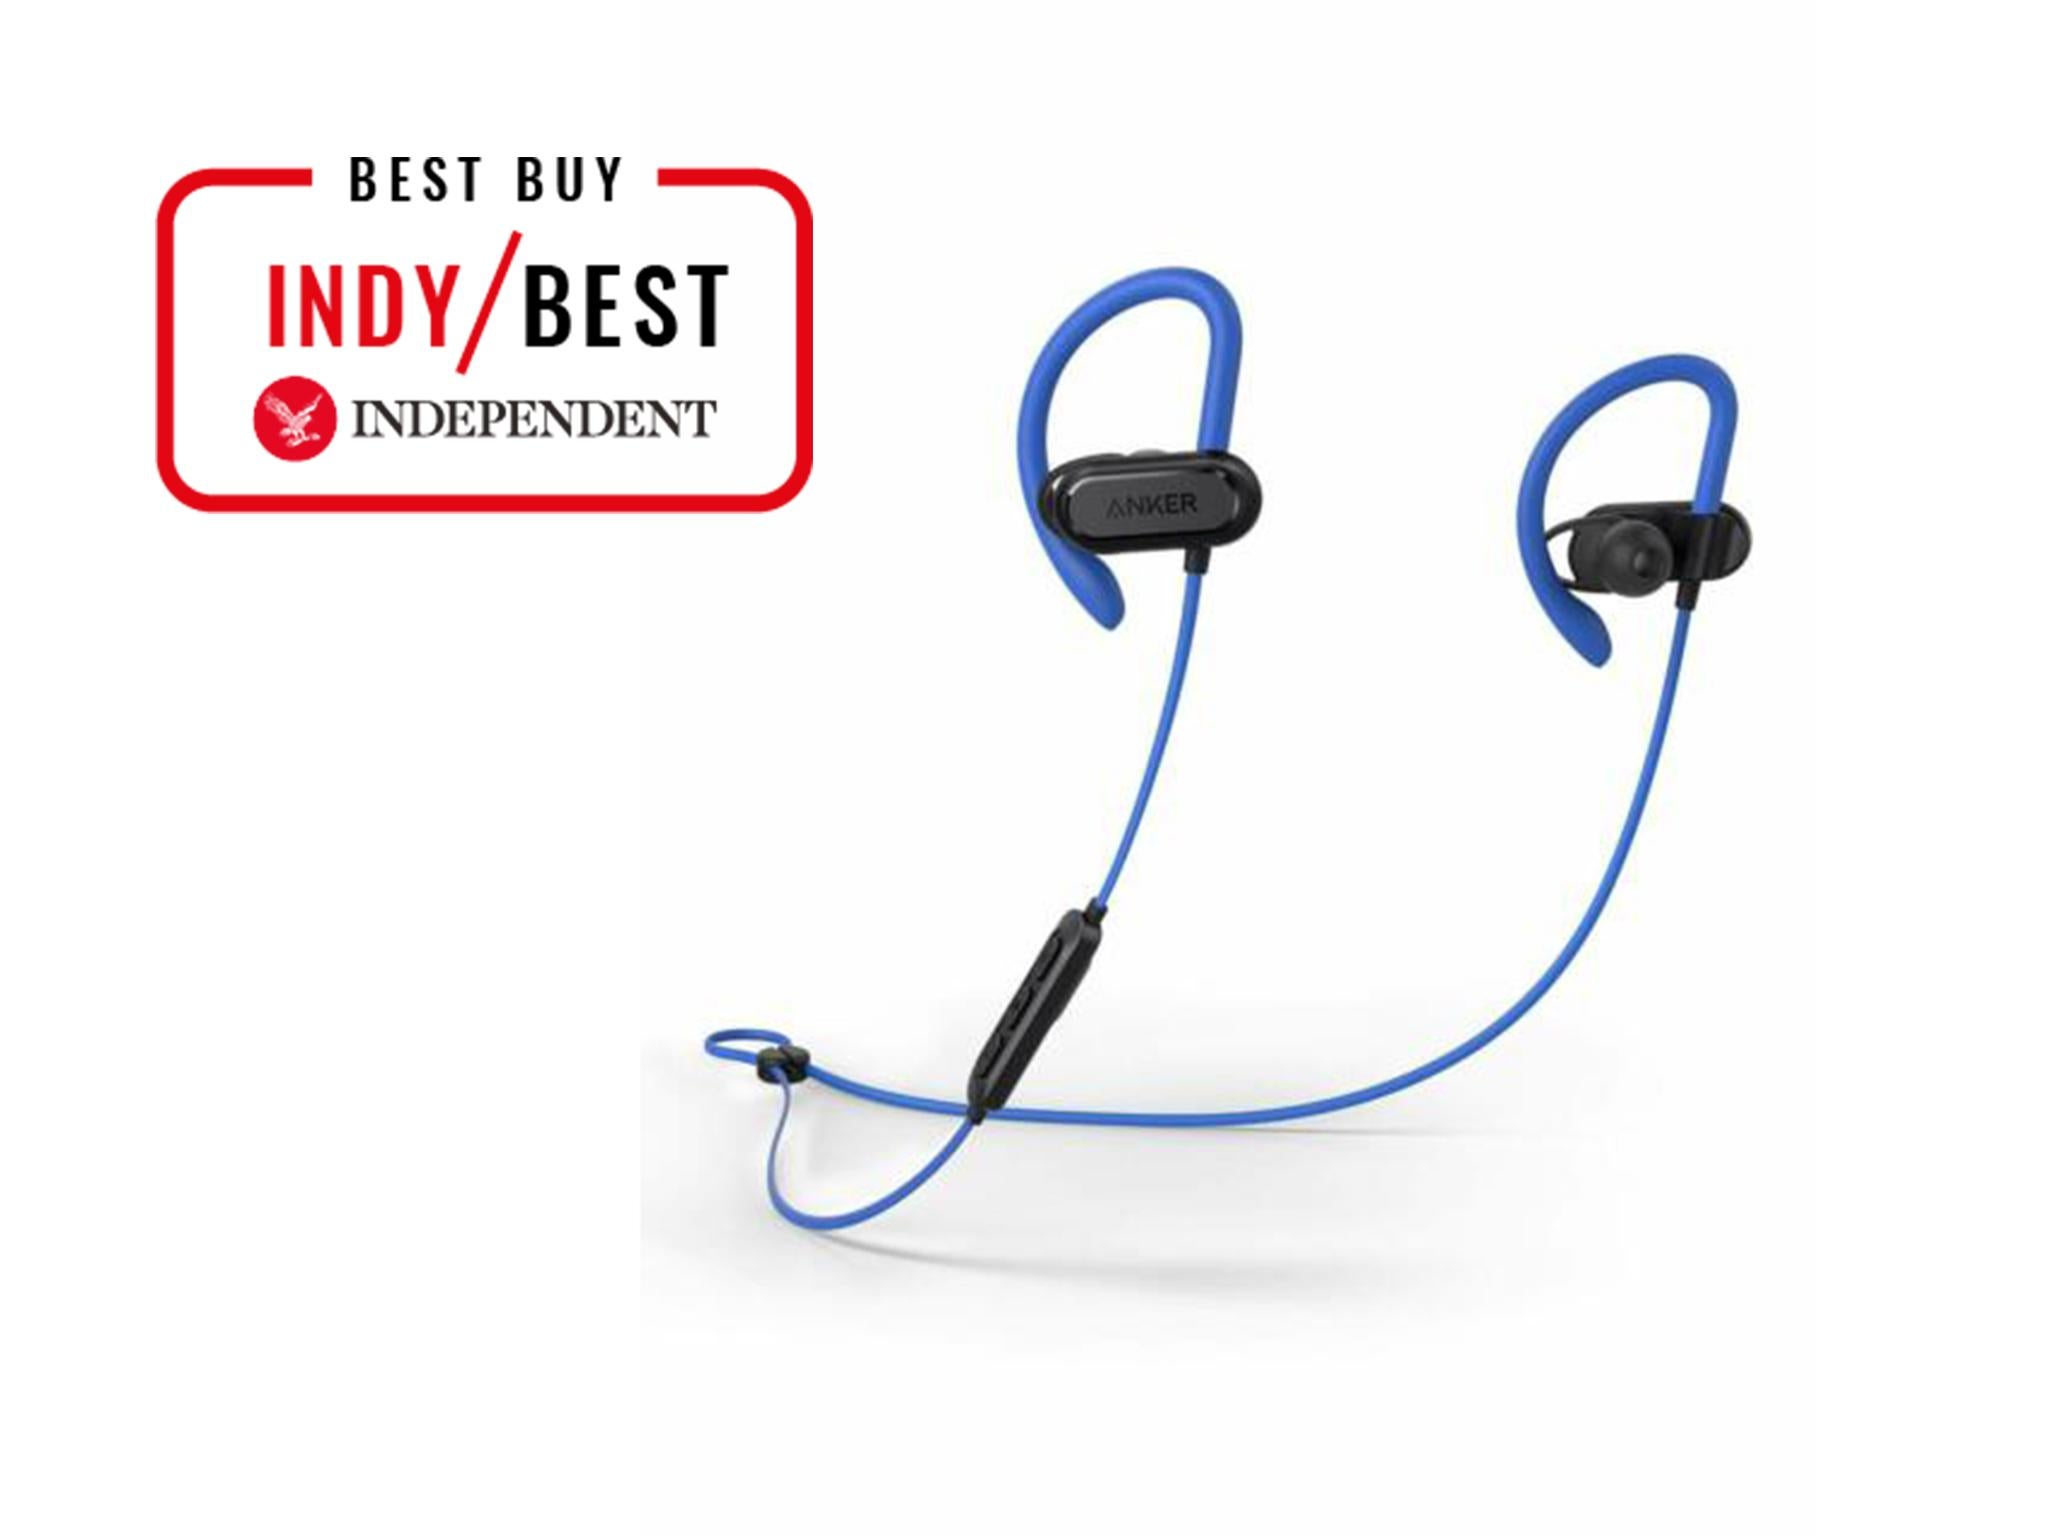 aeb9fee53a8 8 best running headphones for sound quality, battery life and comfort | The  Independent